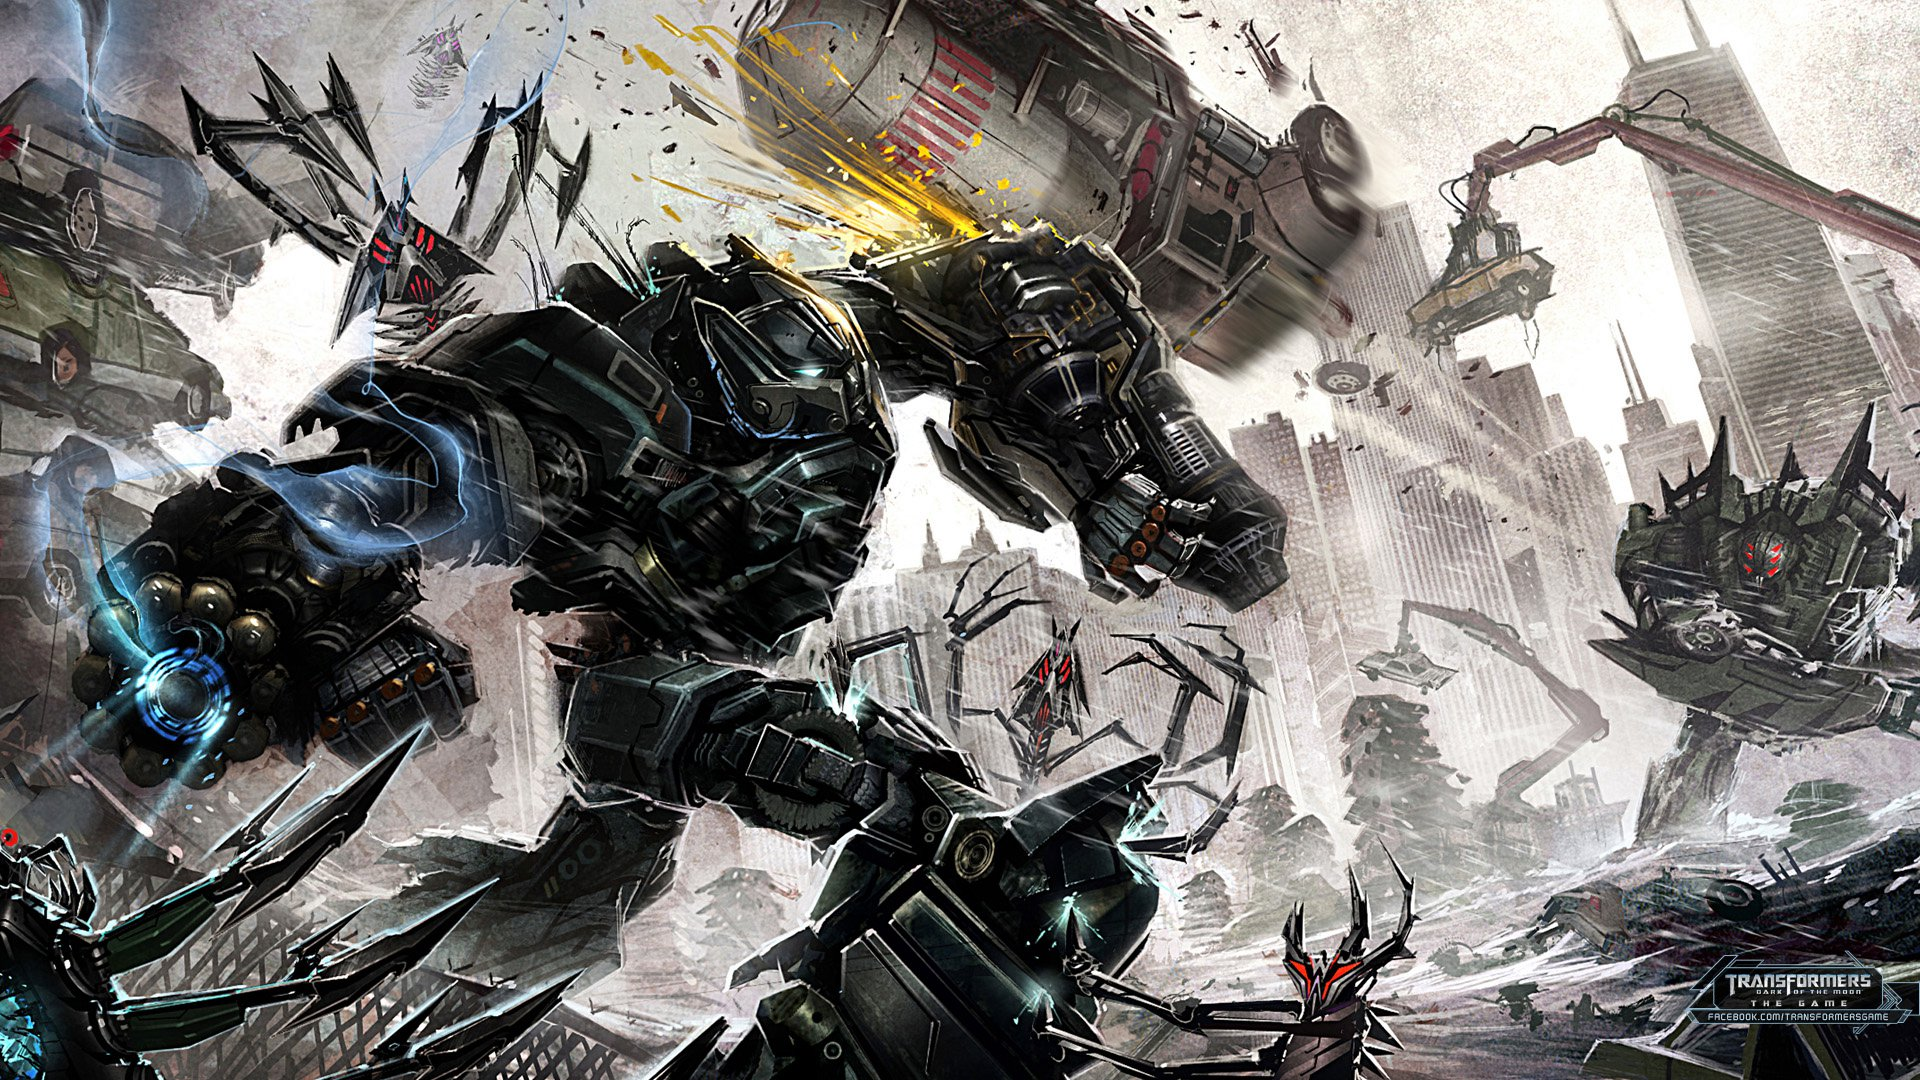 Transformers: Dark Of The Moon Video Game Concept Art ...